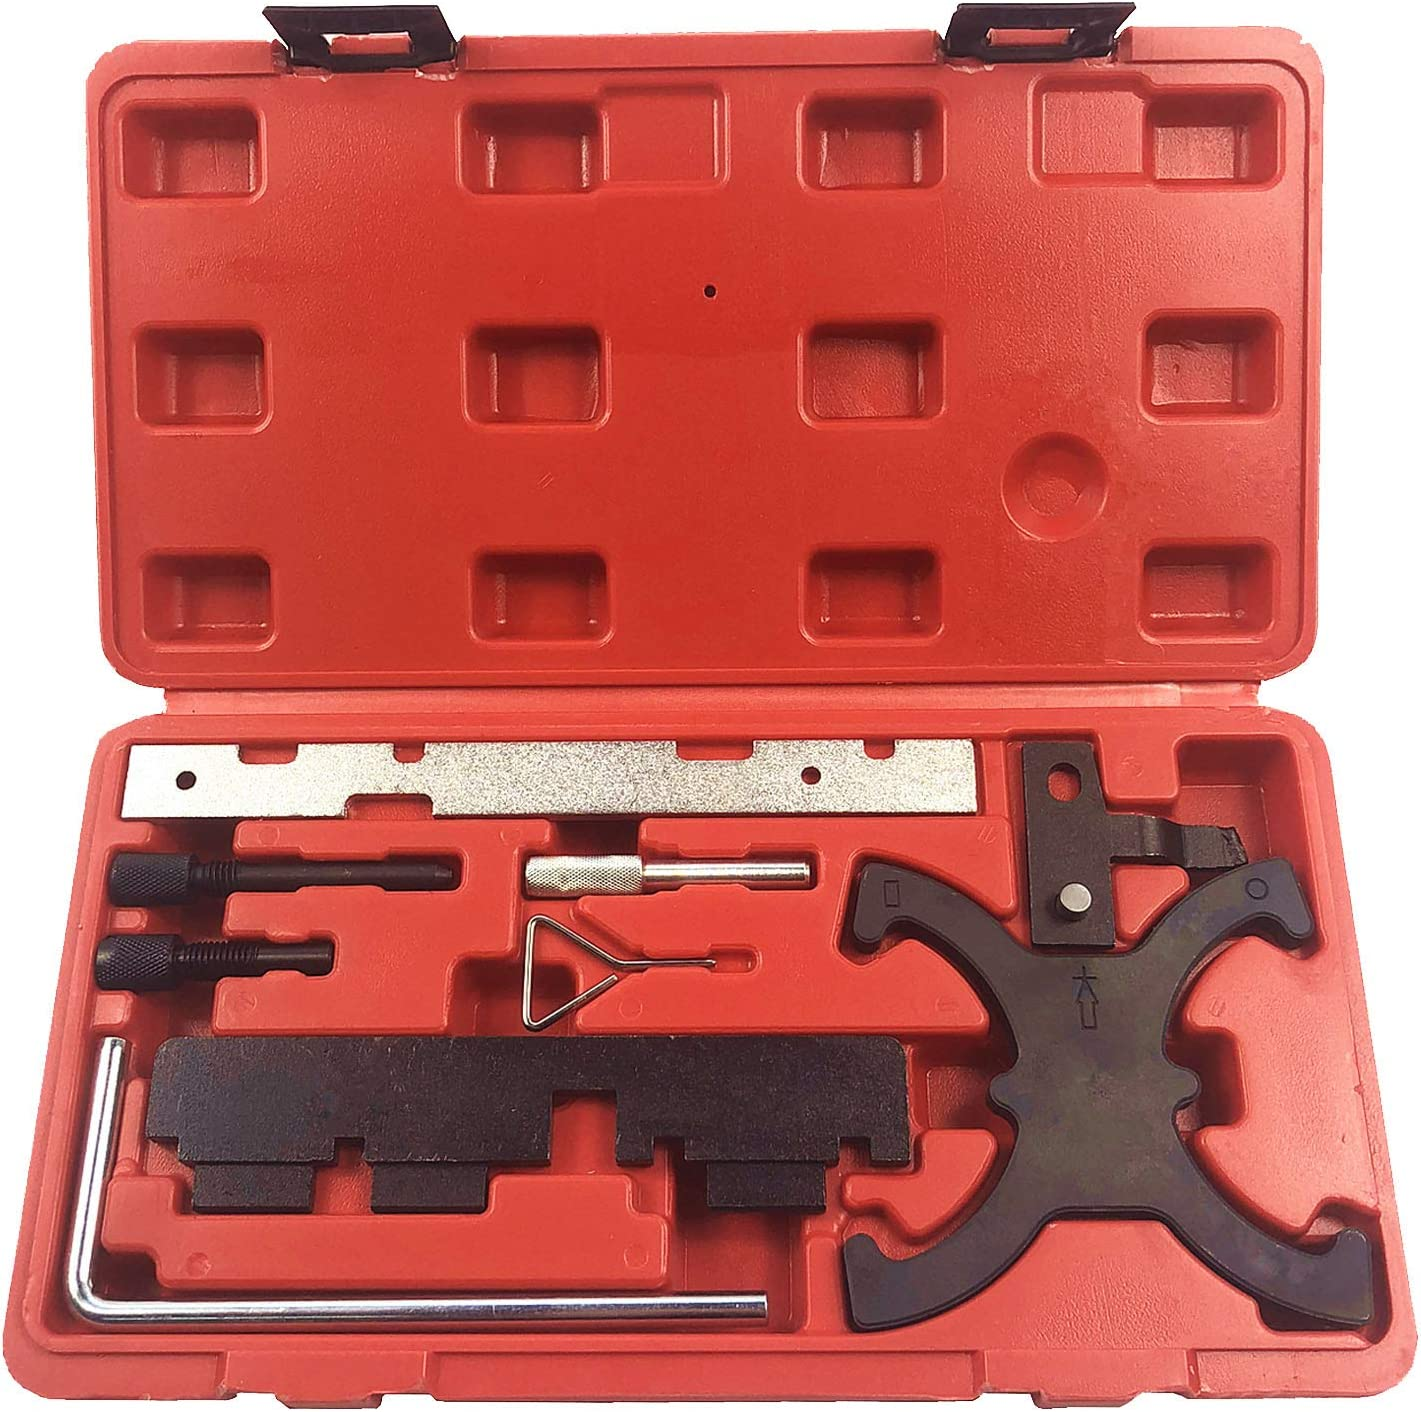 03-09 Best Q Engine Camshaft Timing Locking Tool Set Kit for Ford 1.6 VVT and Focus//C Max 1.6 VCT-Ti